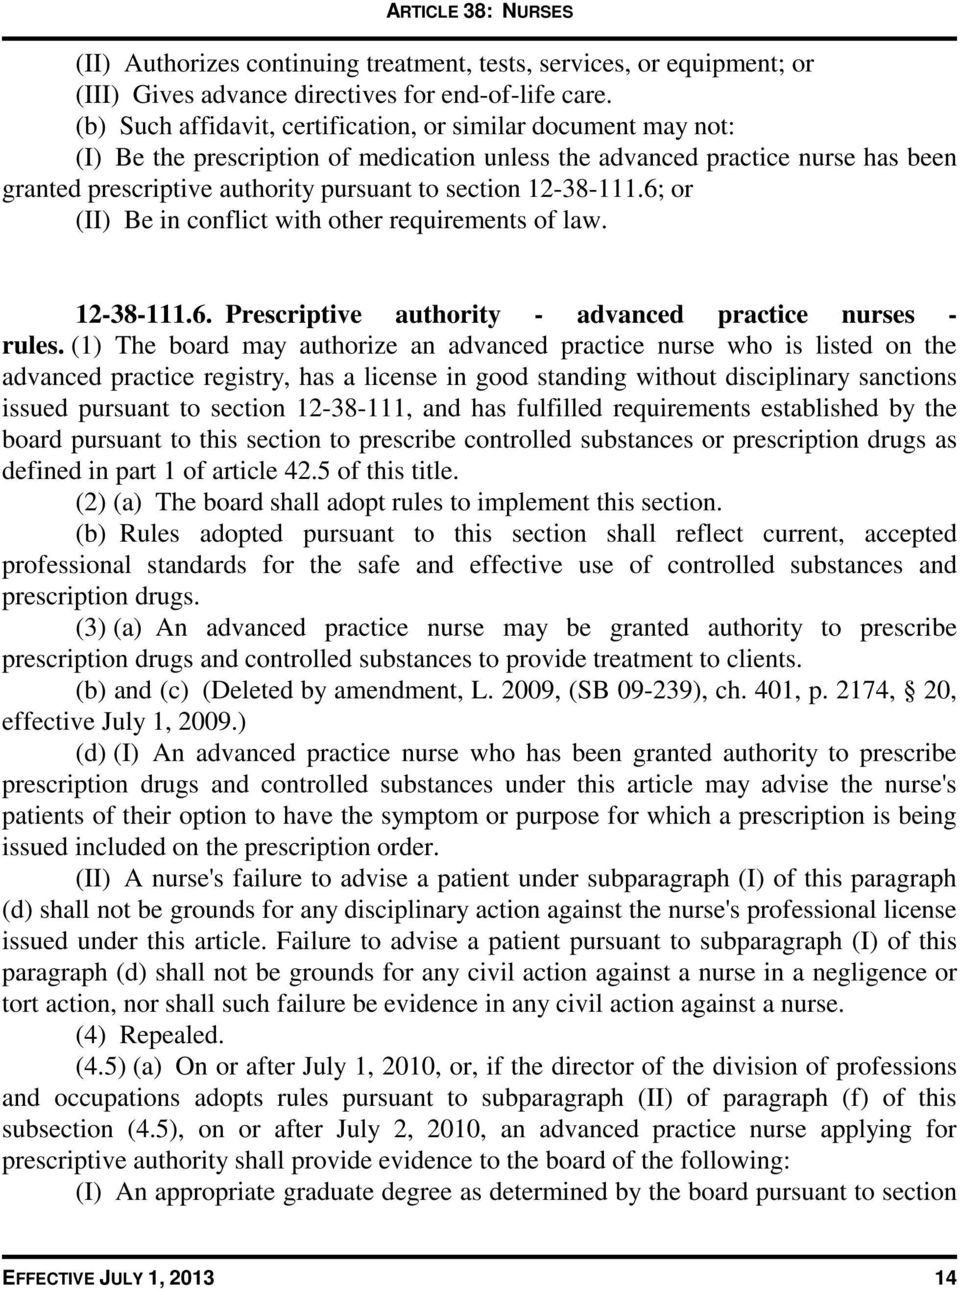 12-38-111.6; or (II) Be in conflict with other requirements of law. 12-38-111.6. Prescriptive authority - advanced practice nurses - rules.